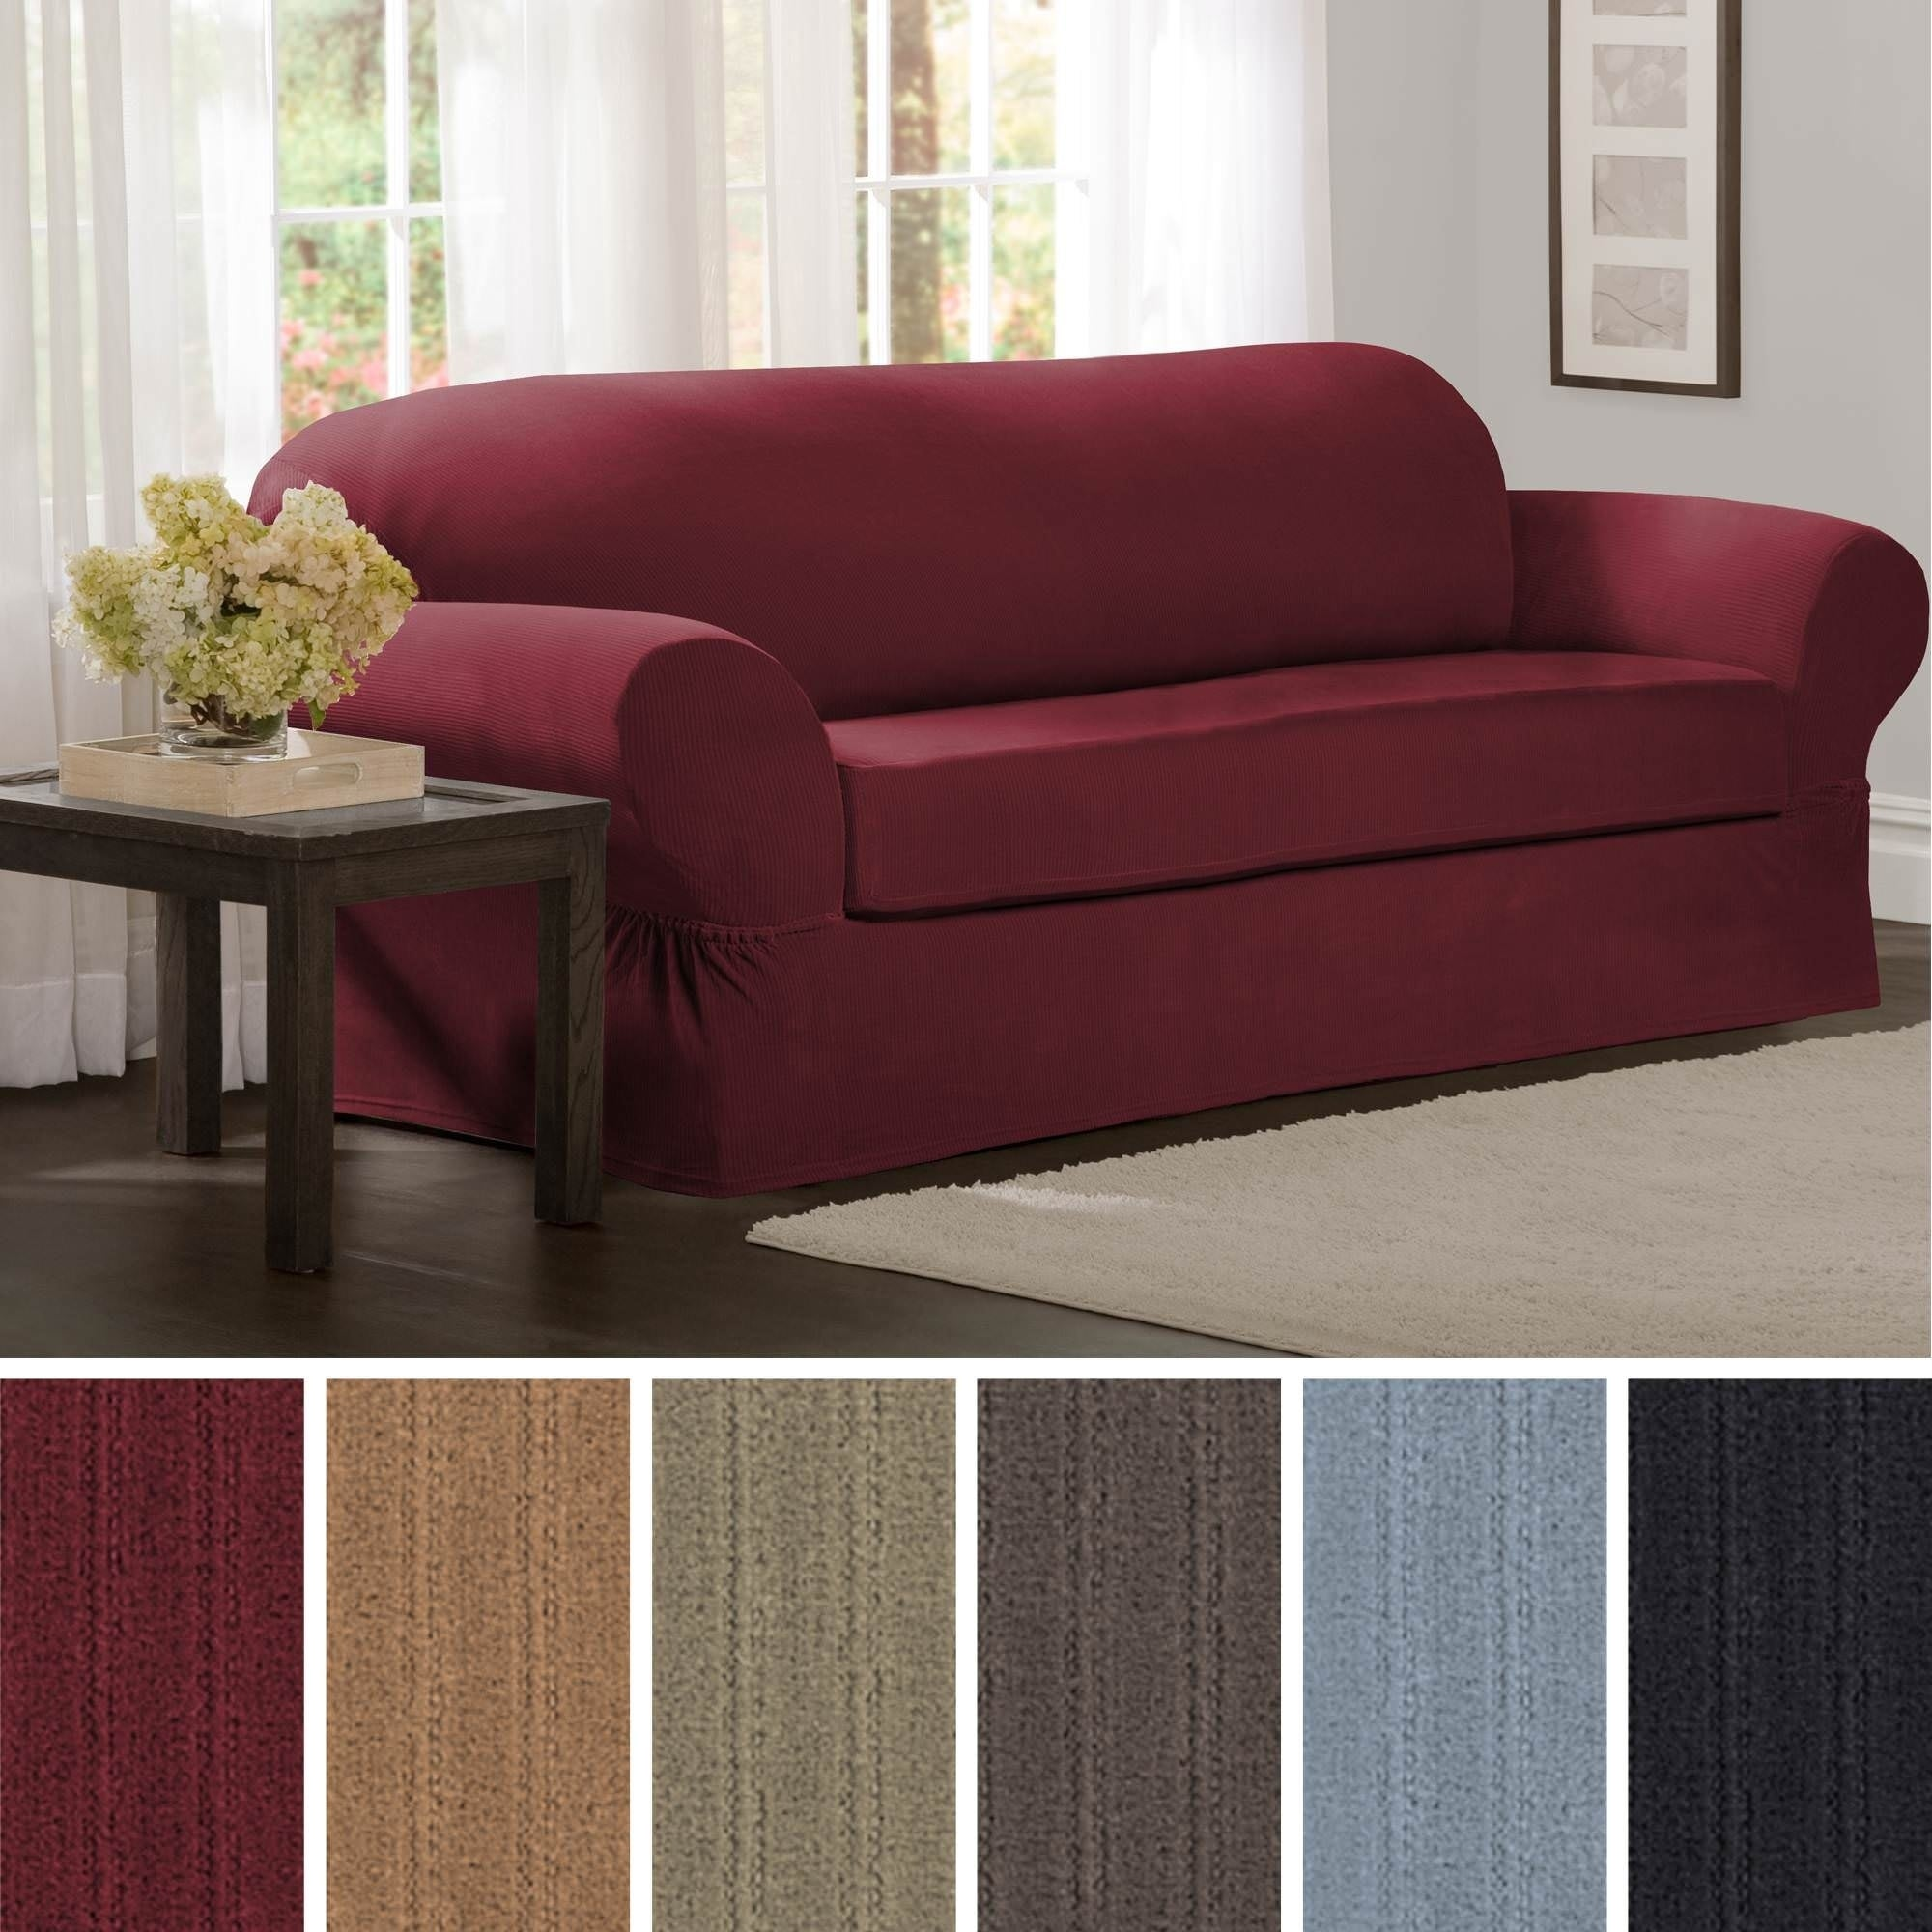 Maytex Collin 2-Piece Sofa Slipcover - 74-96\